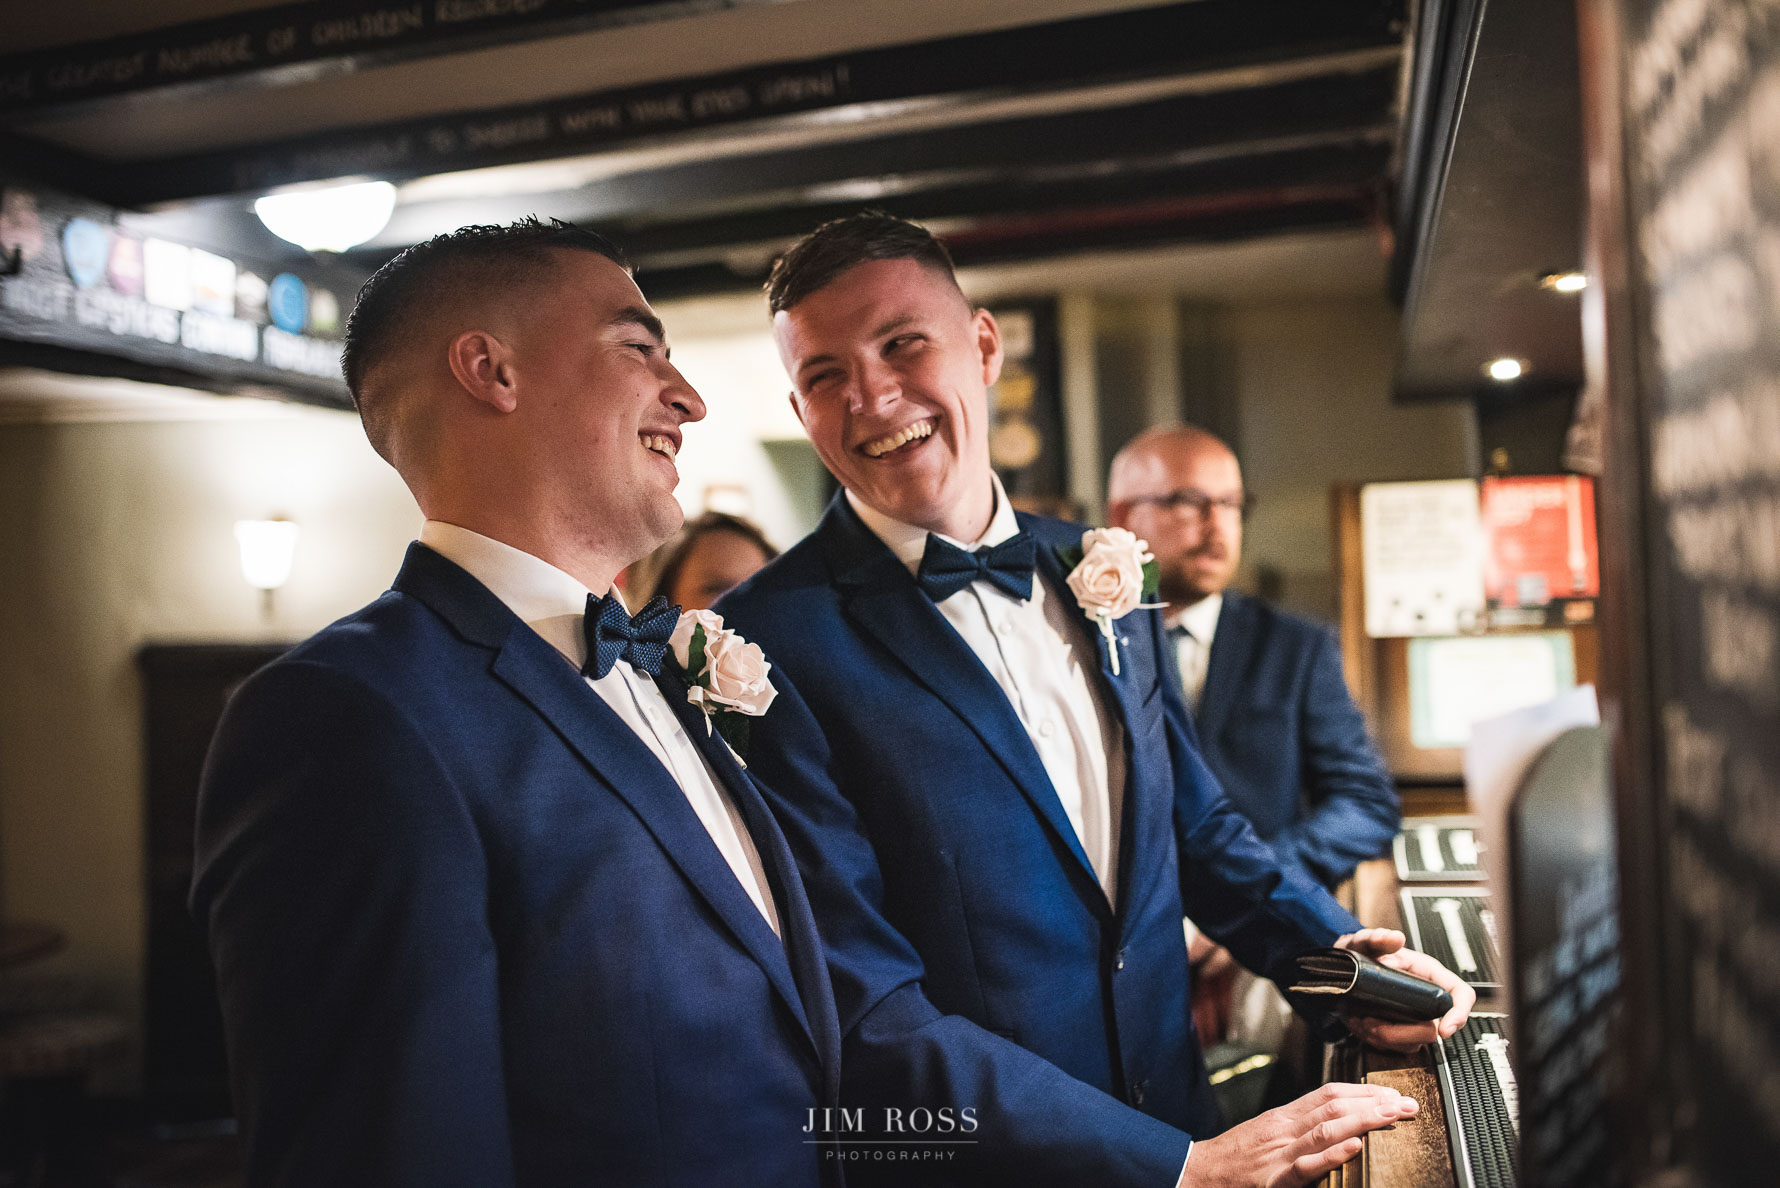 Pub and pint time for best man and groom